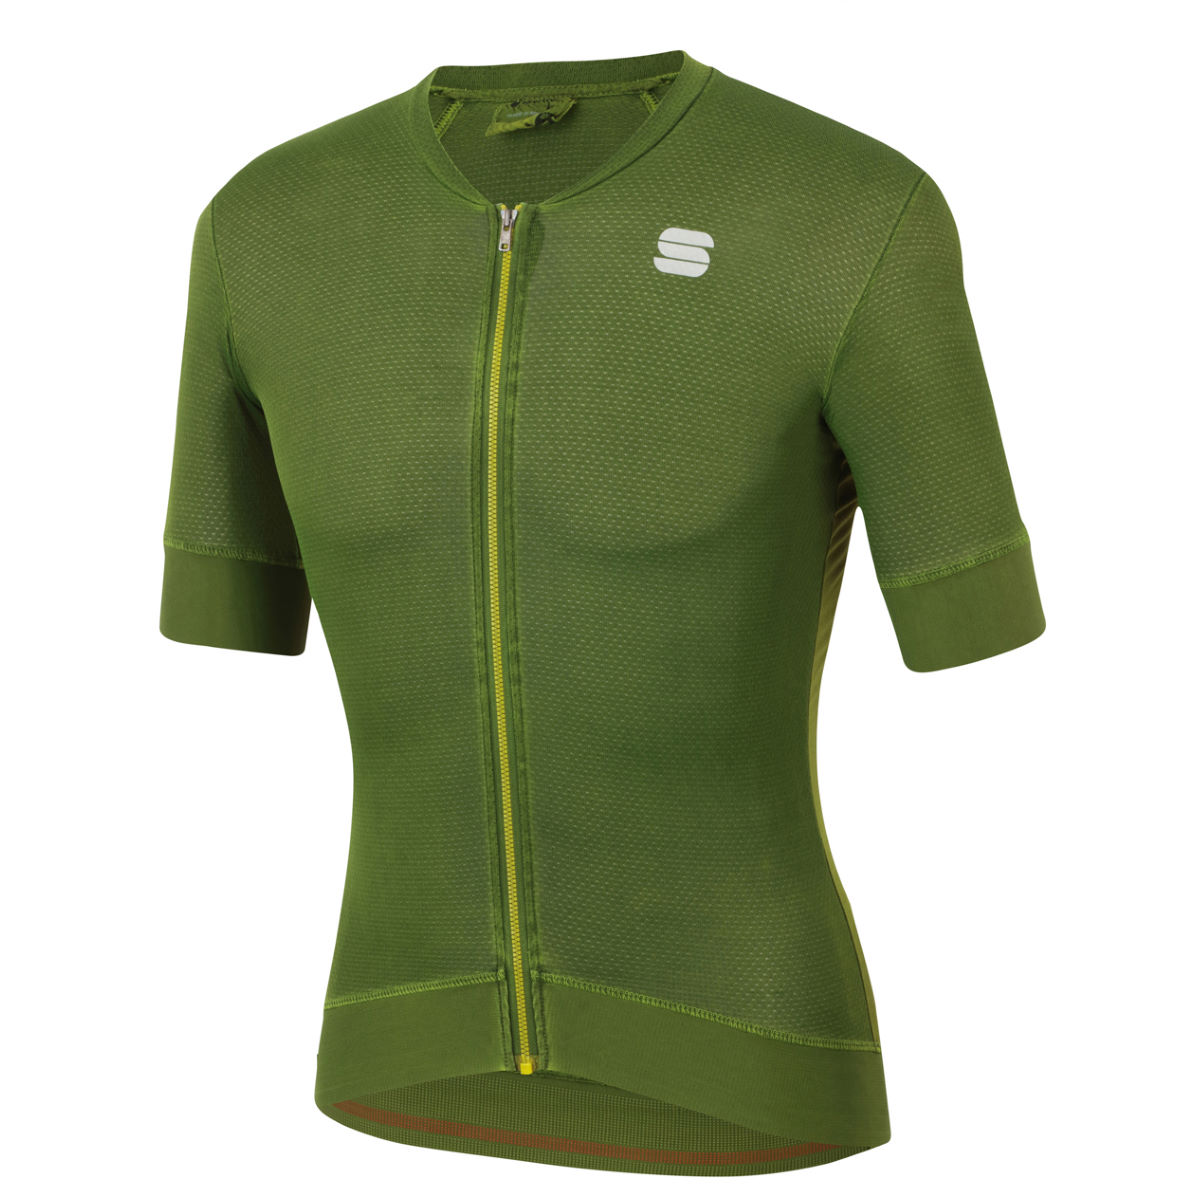 Maillot Sportful Monocrom - Maillots